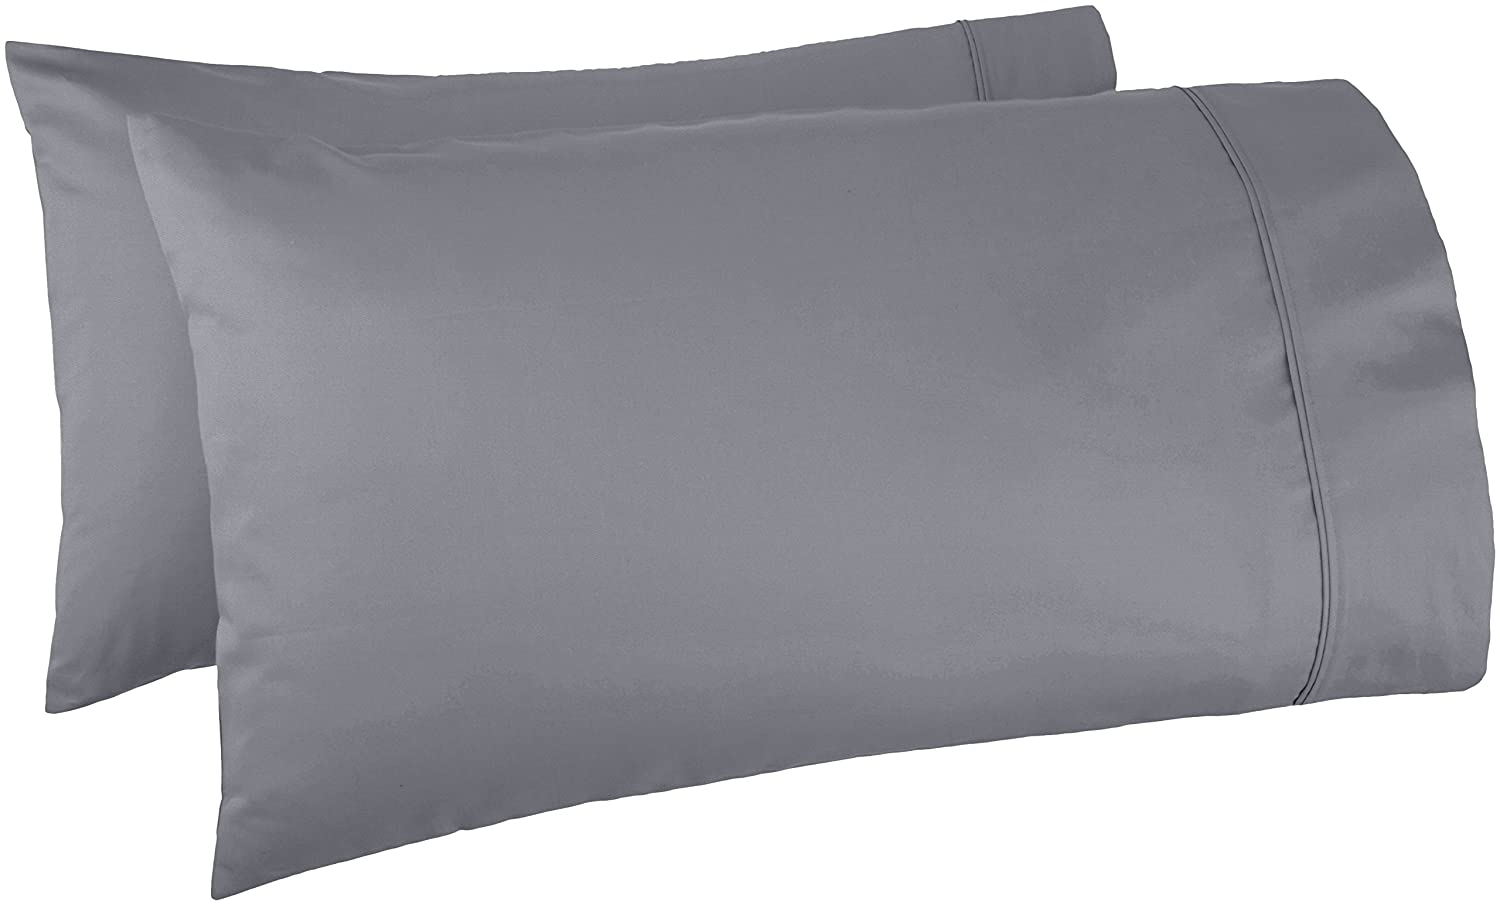 AmazonBasics 400 Thread Count Pillow Cases- Standard, Set of 2, Dark Grey